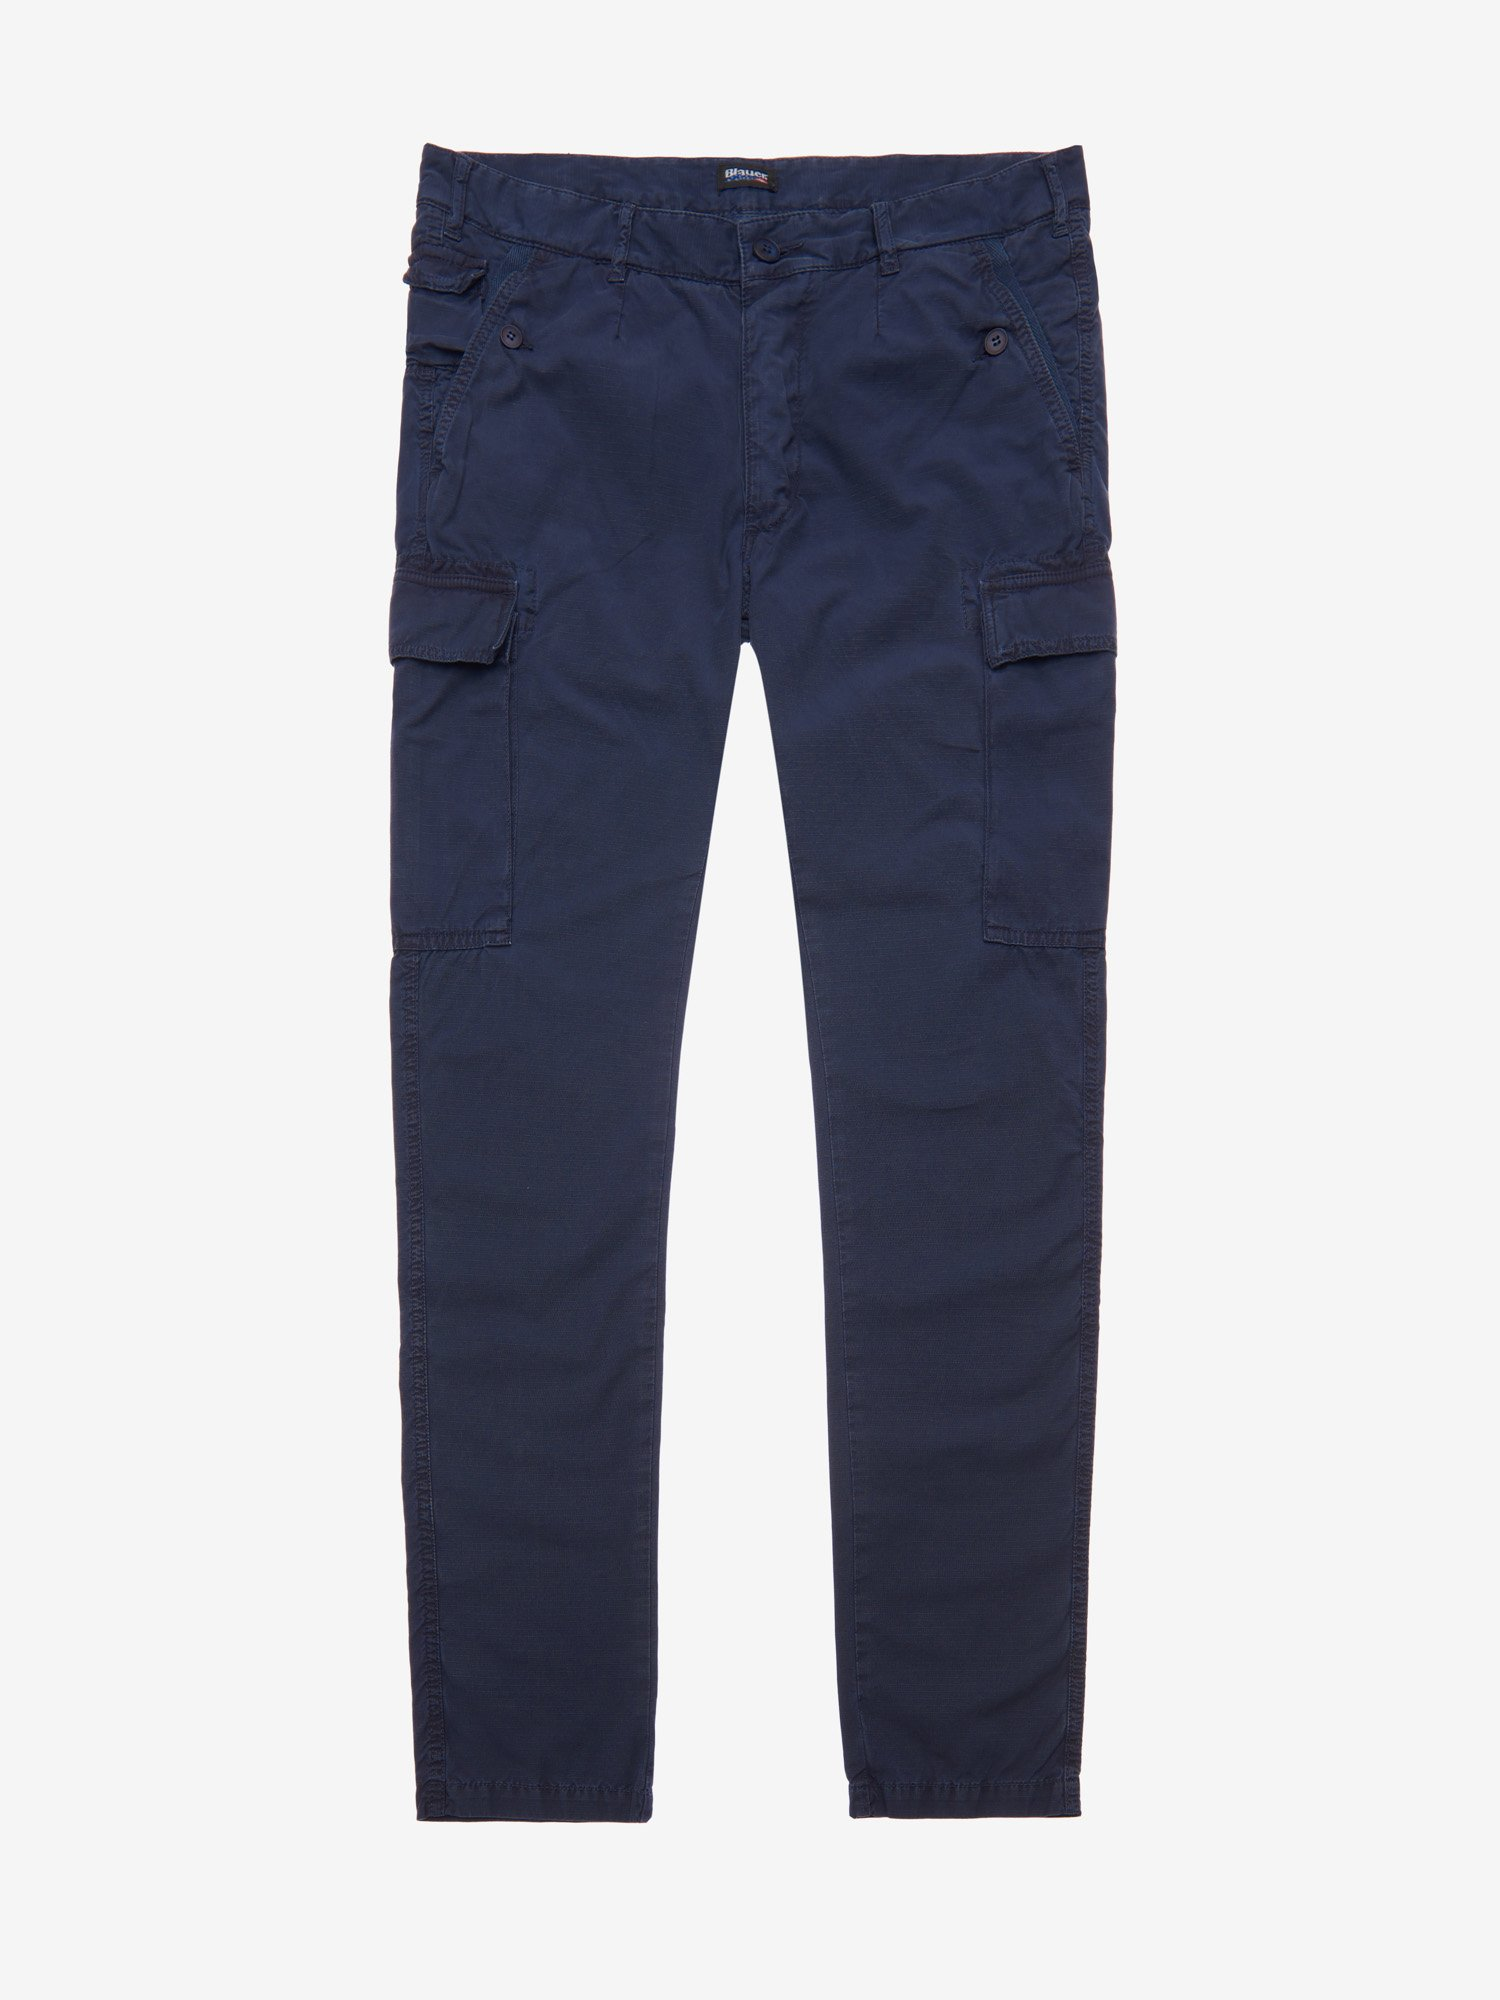 COTTON CARGO TROUSERS - Blauer